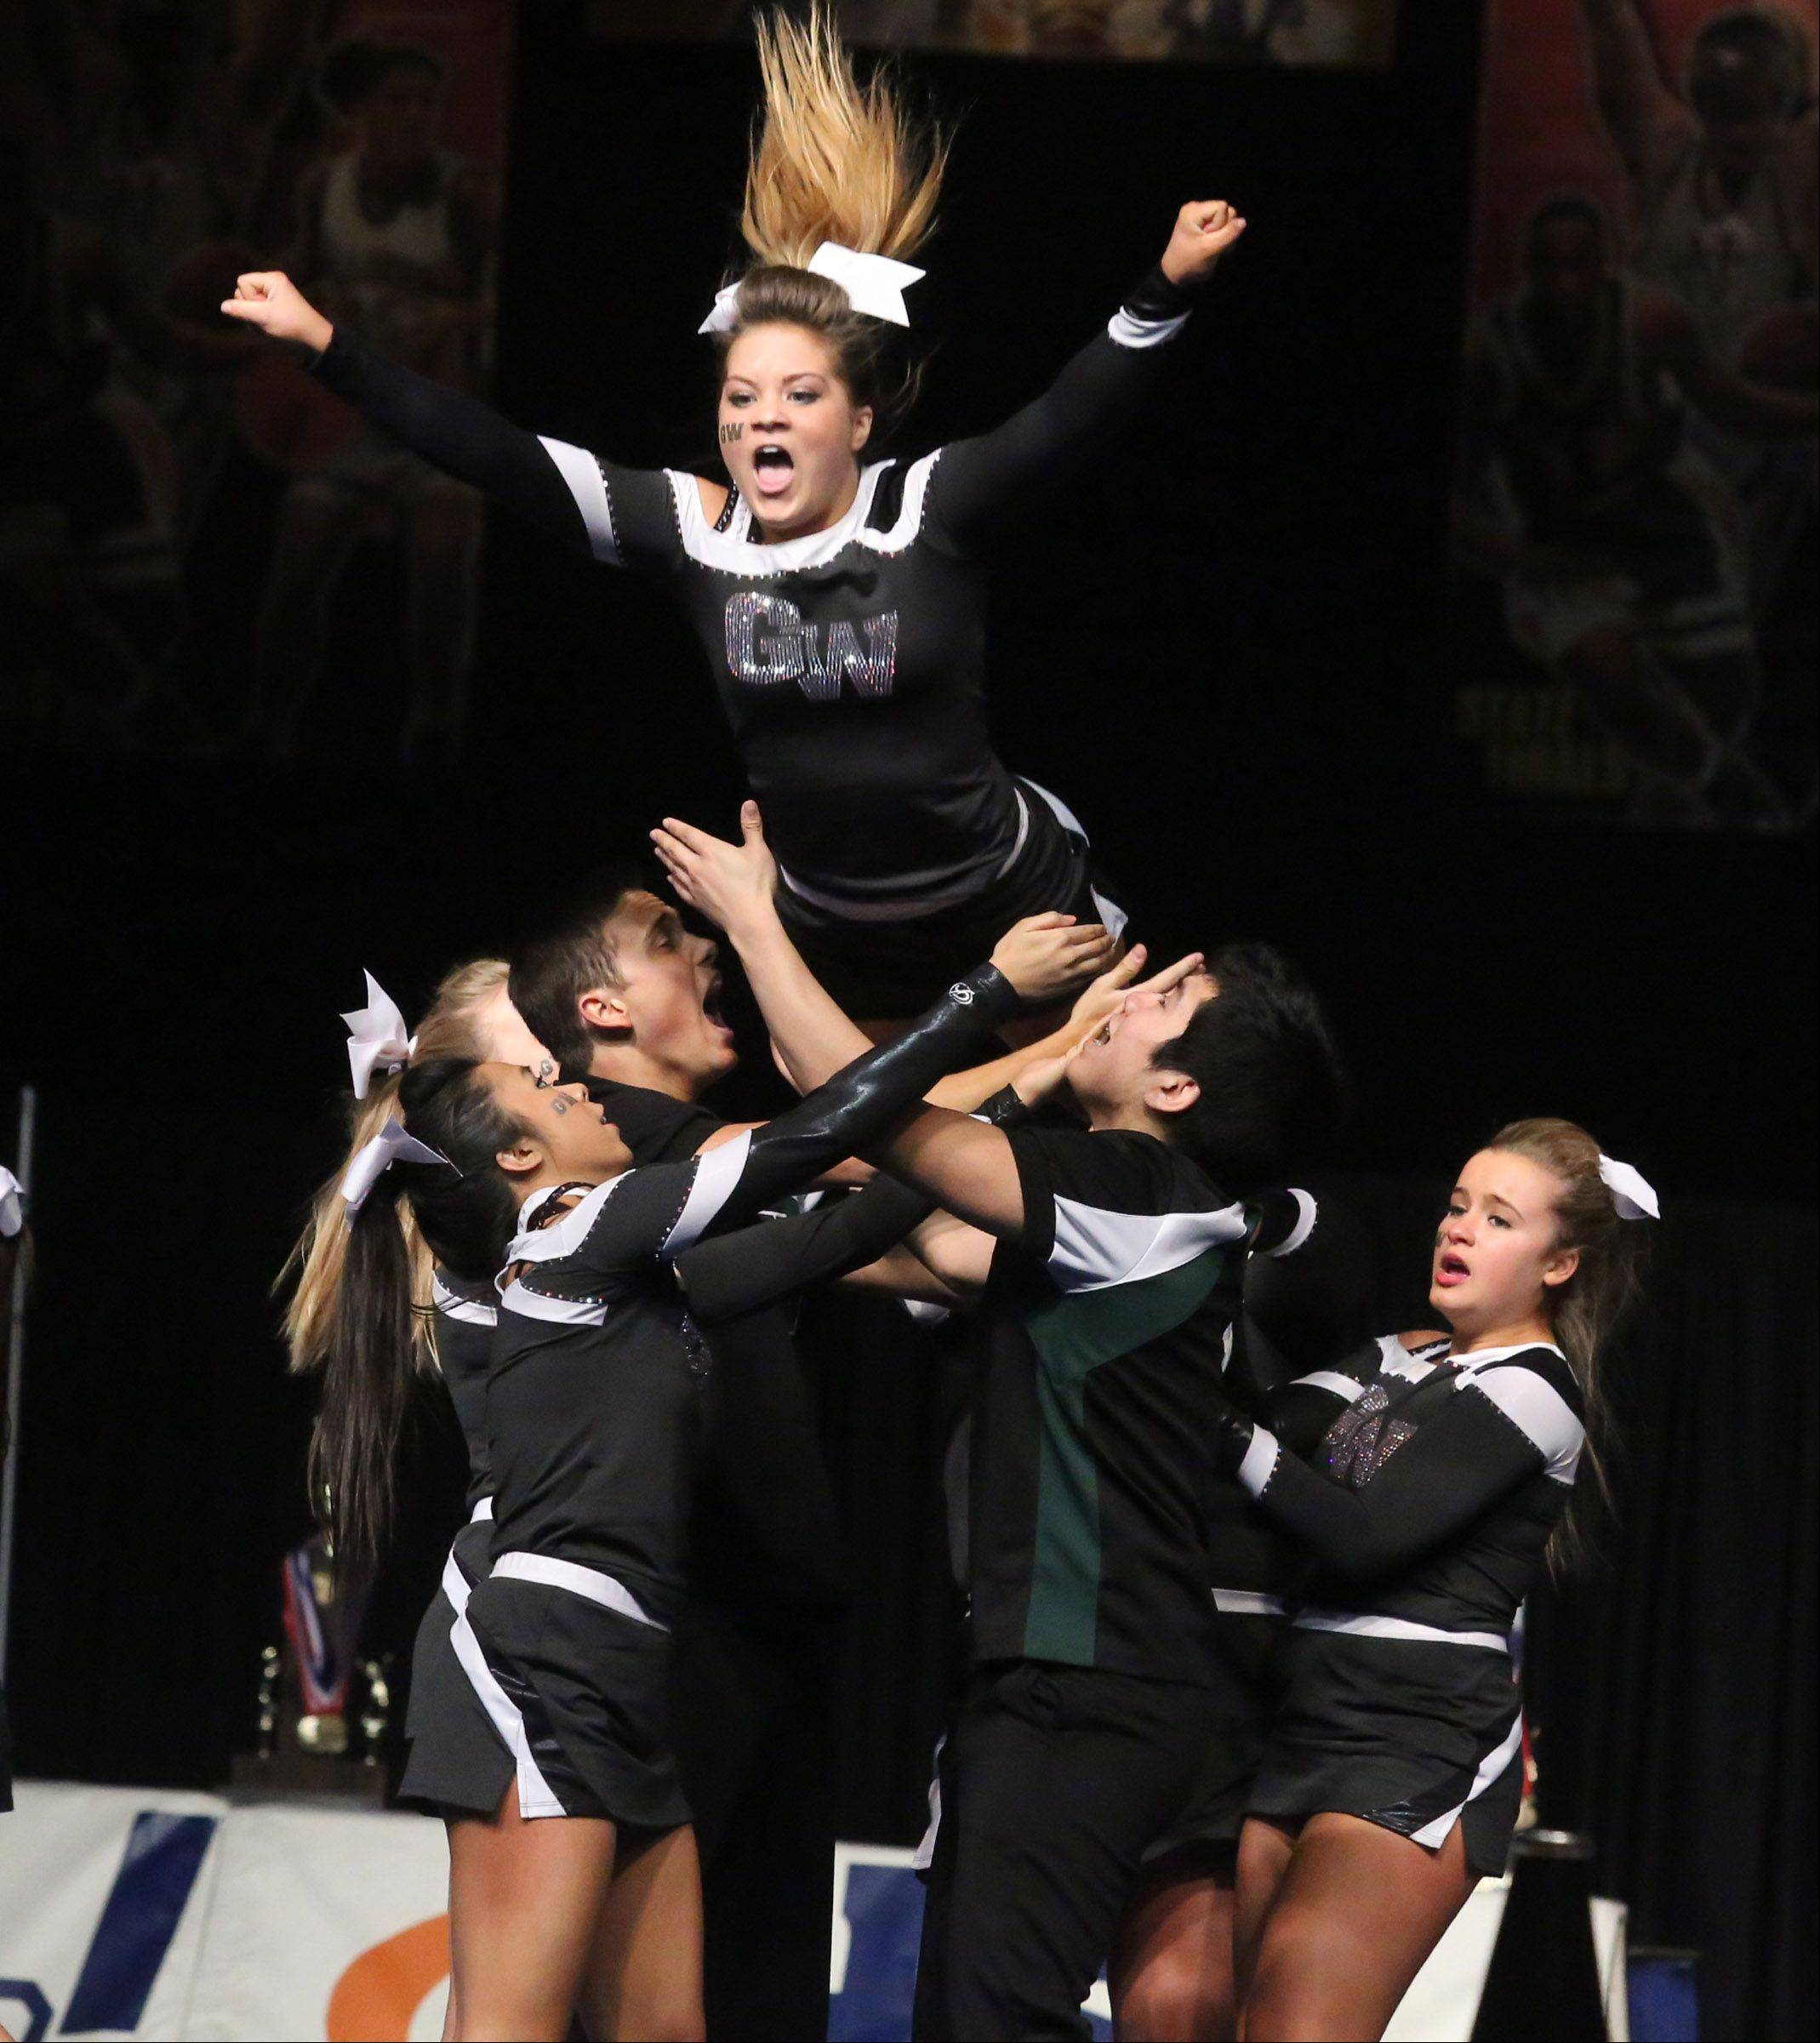 Glenbard West High School's cheer team performs in the coed team category.